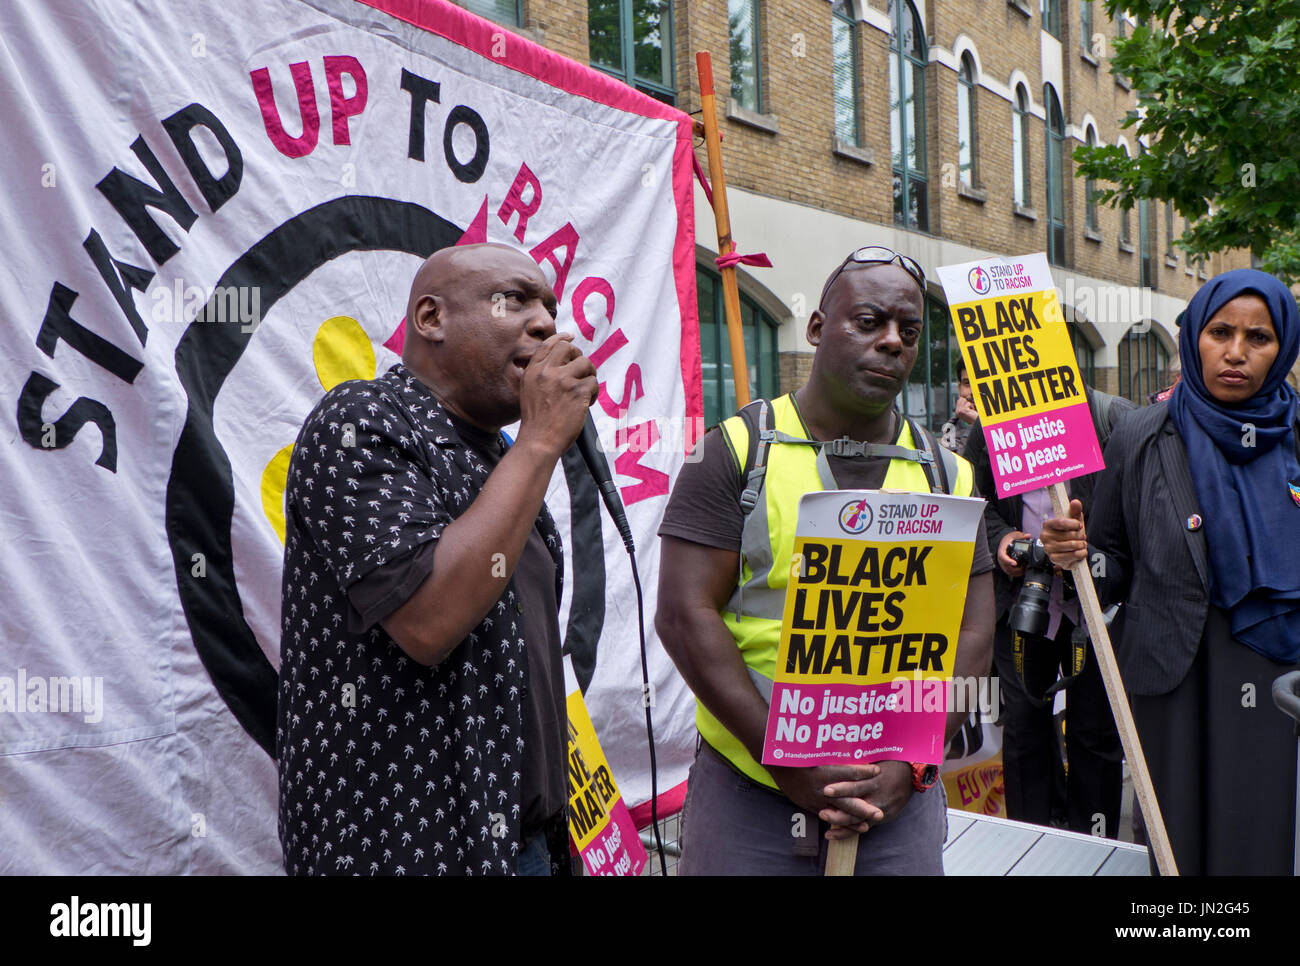 Black Lives Matter and local people demonstrate outside Stoke Newington Police Station for Rashan Charles, a 20-year-old black man who died after being apprehended by police in east London - Stock Image